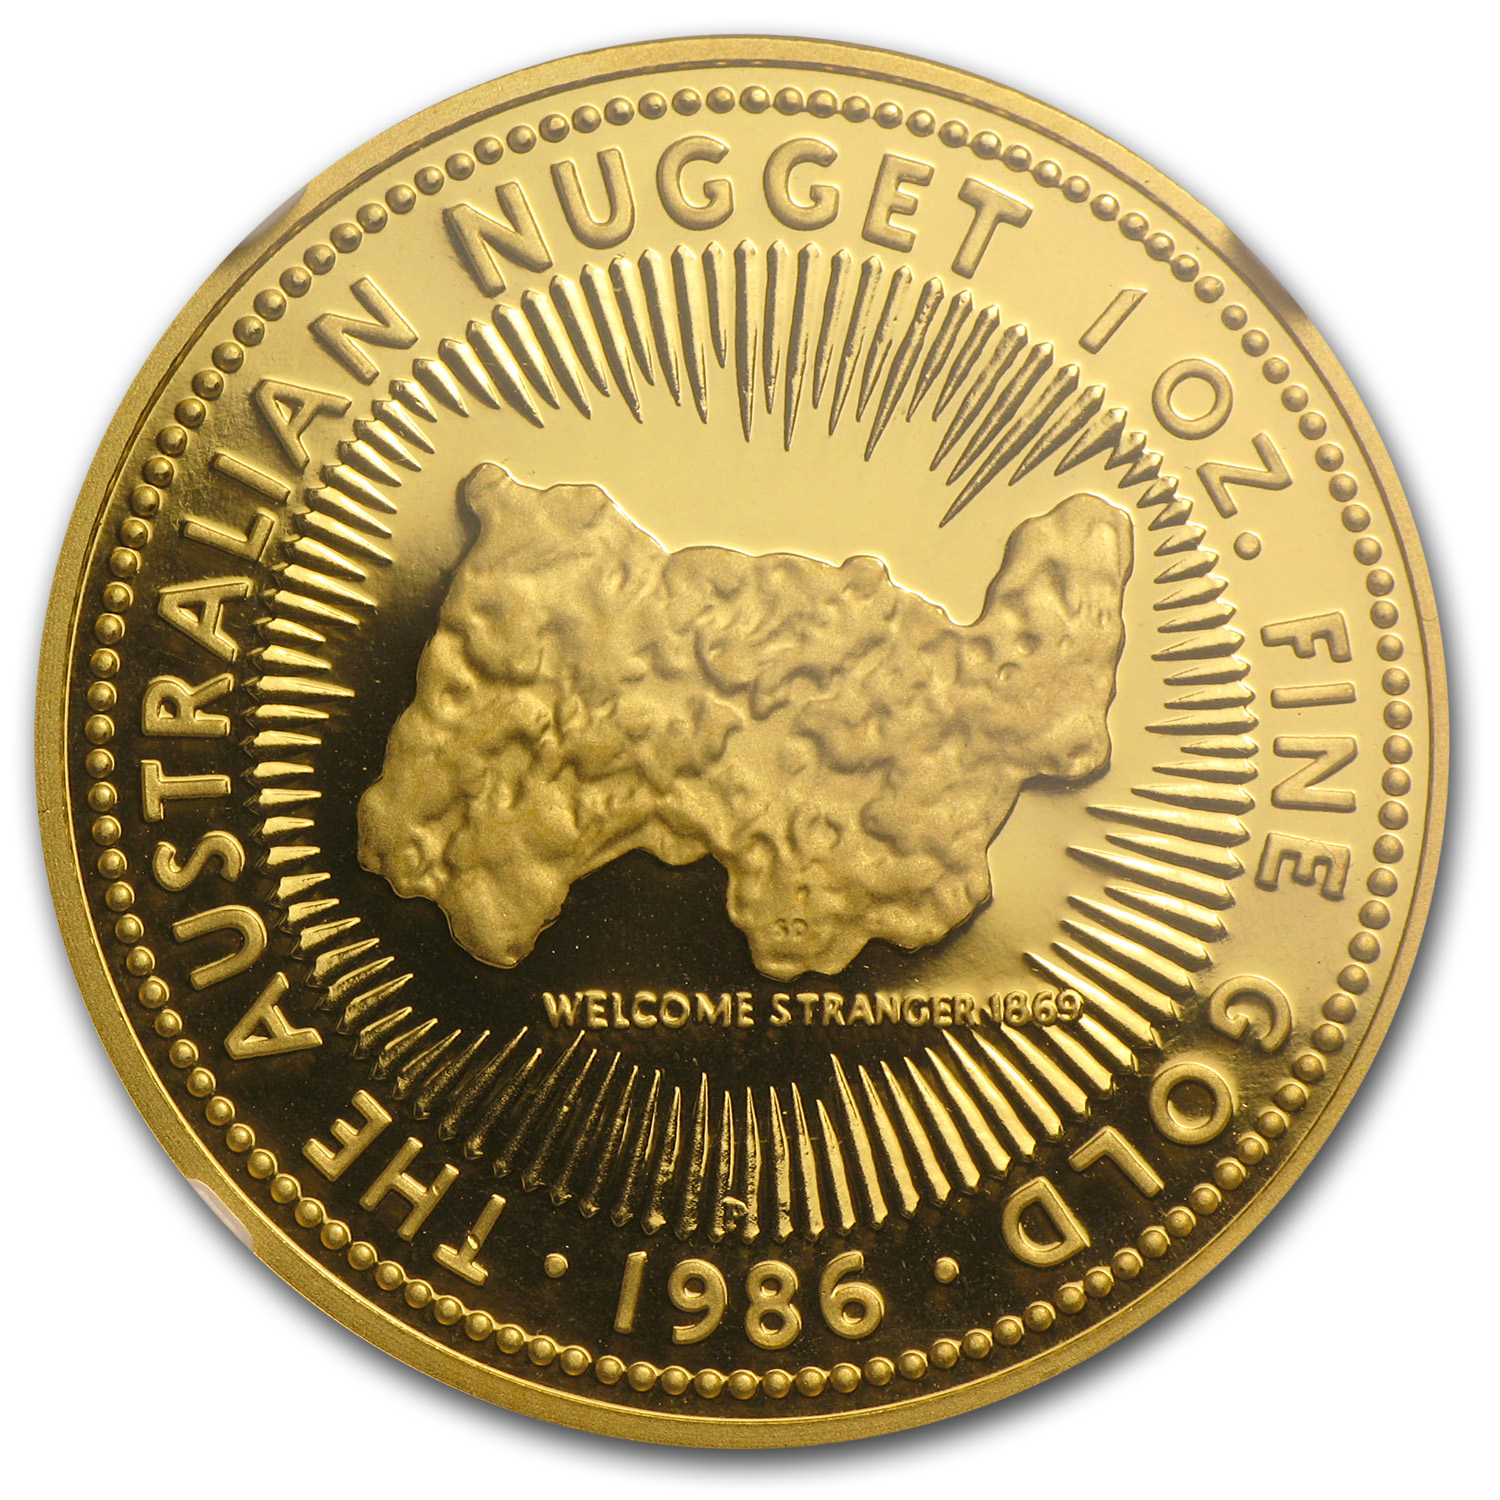 1986 1 oz Australian Proof Gold Nugget NGC PF-68